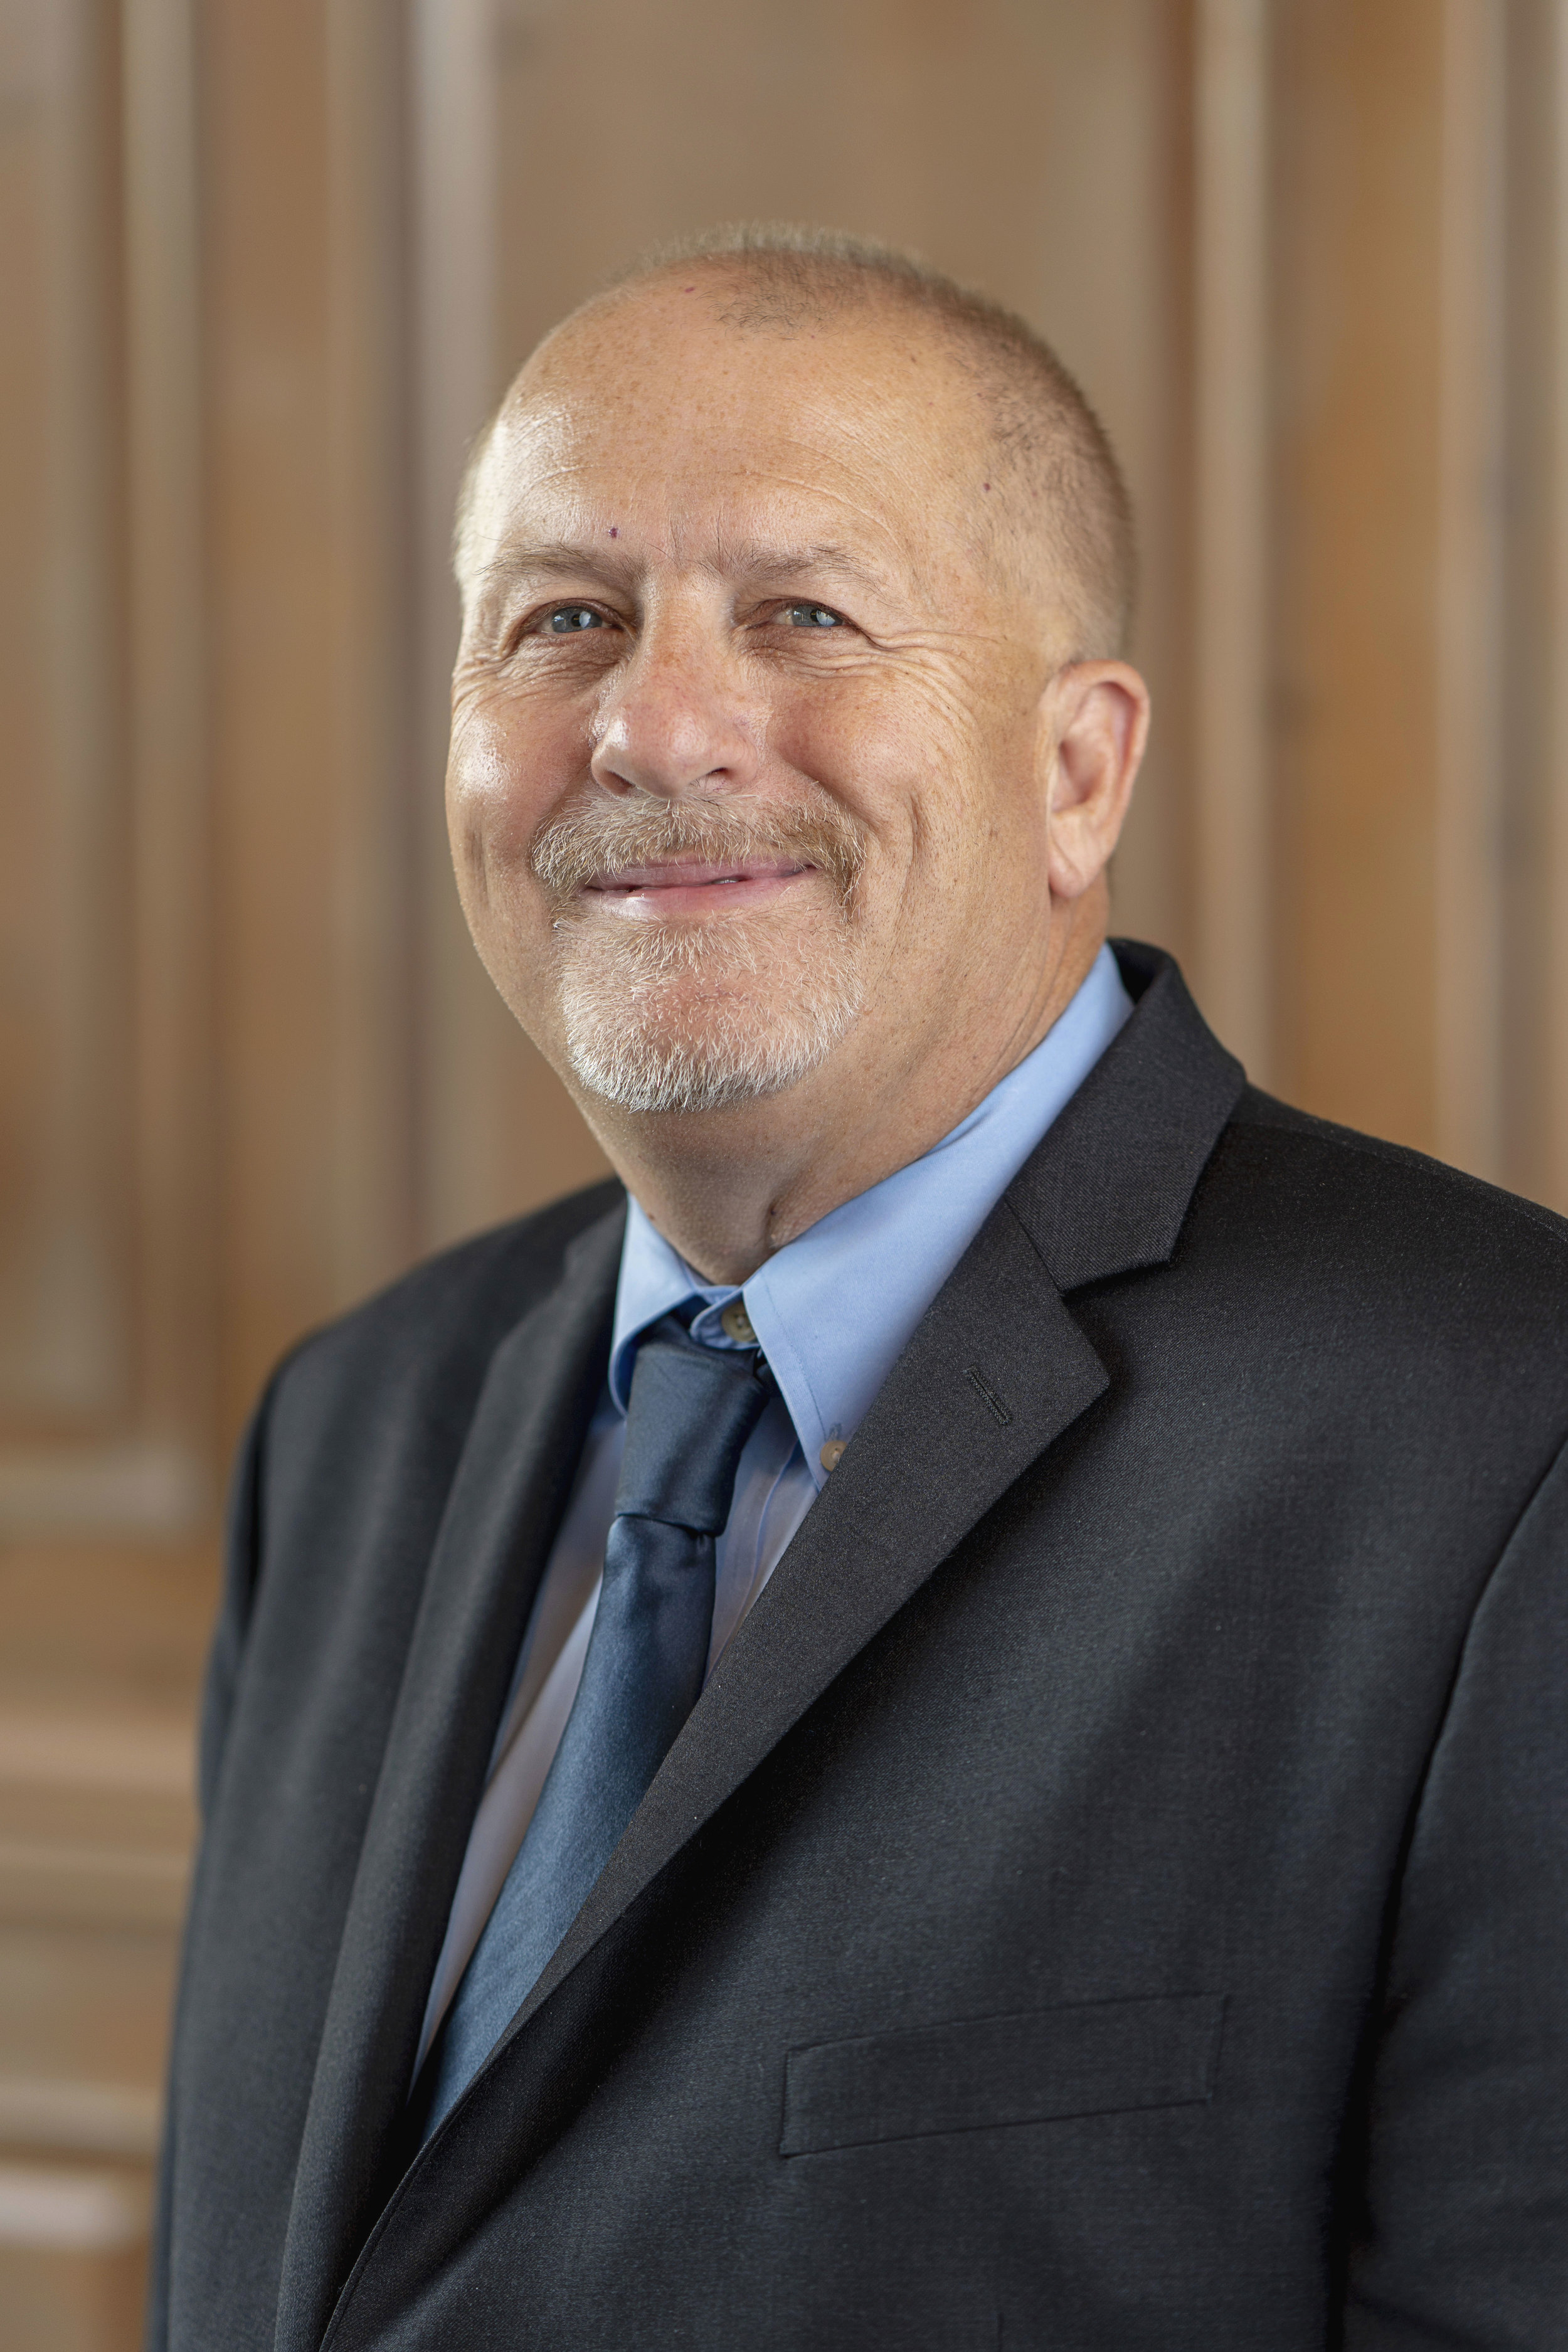 Rick Esenberg, president of the Wisconsin Institute for Law and Liberty, a conservative legal foundation